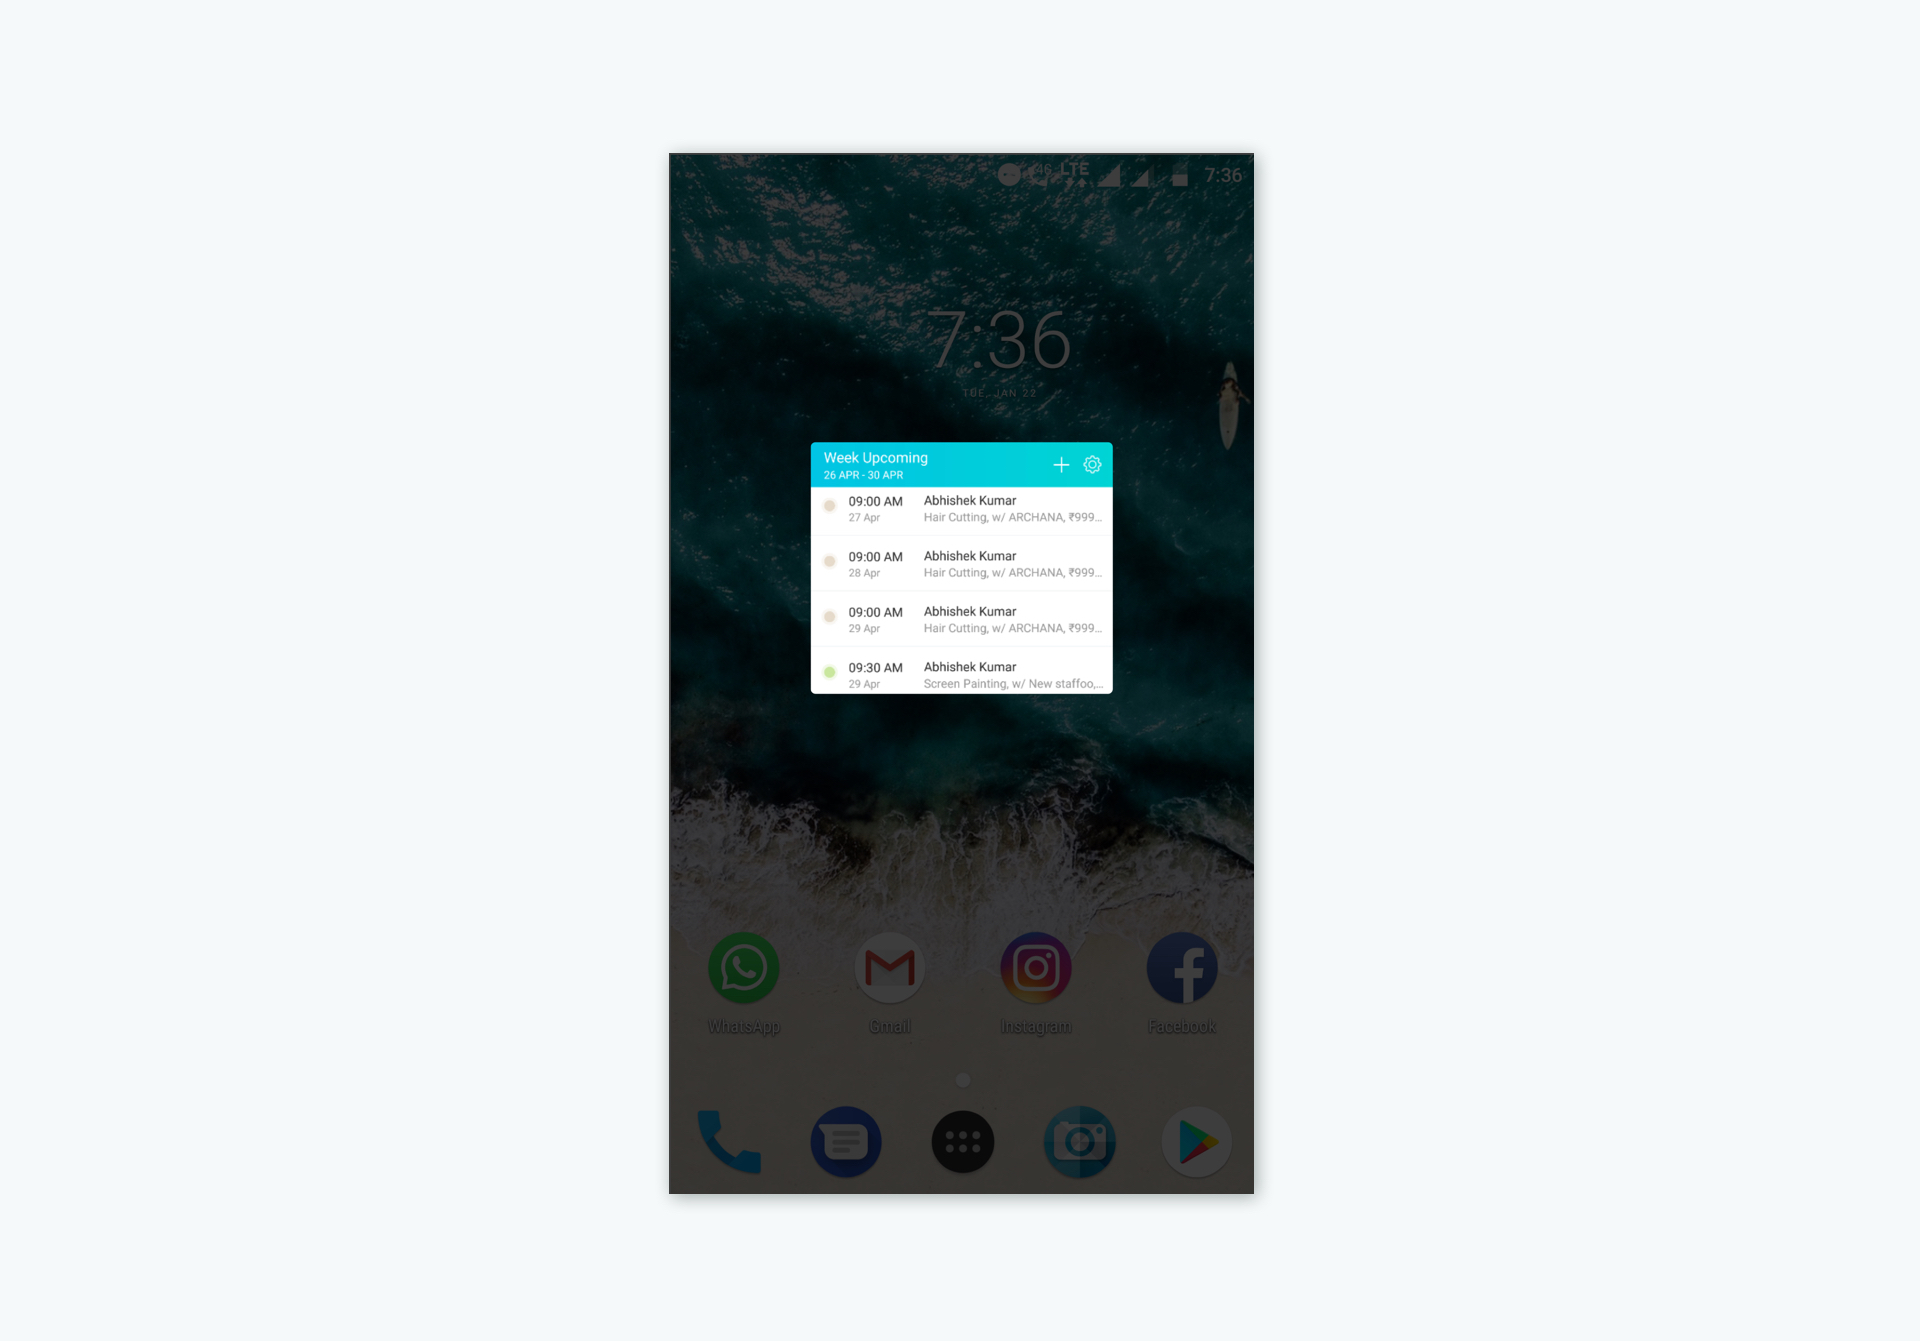 Adding the Setmore widget to your Android homescreen